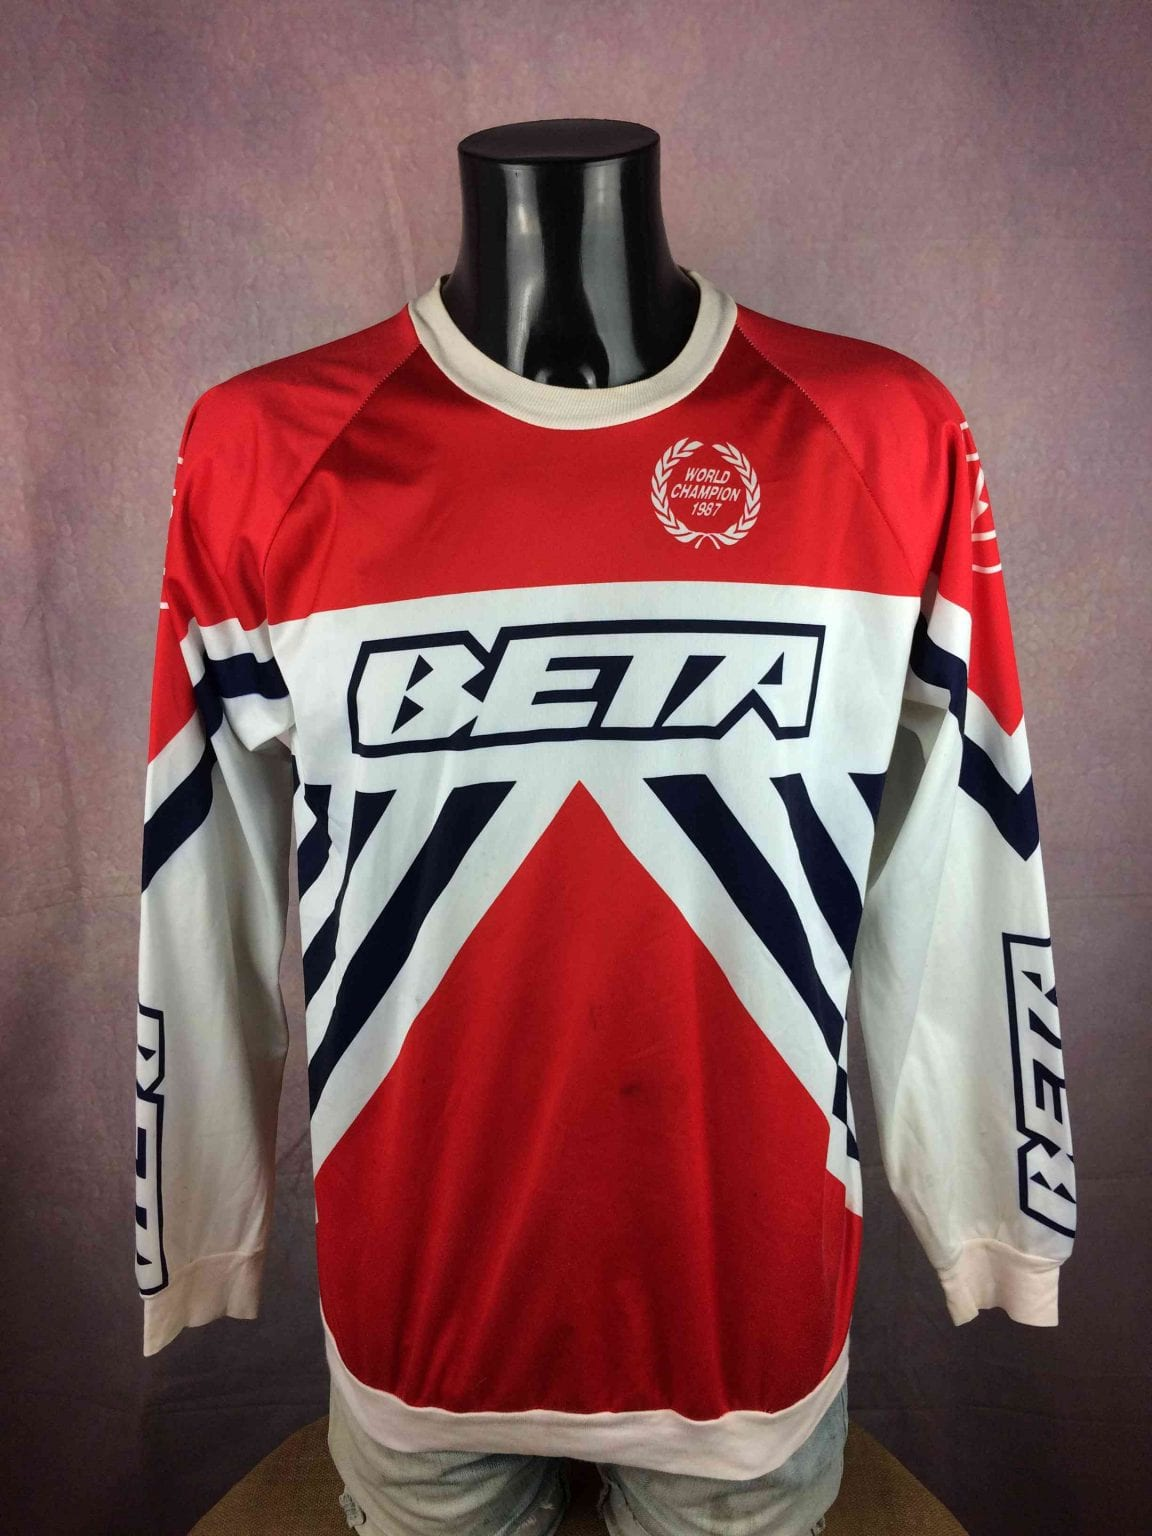 BETA Maillot World Champion 1987 Tarres VTG - Gabba Vintage